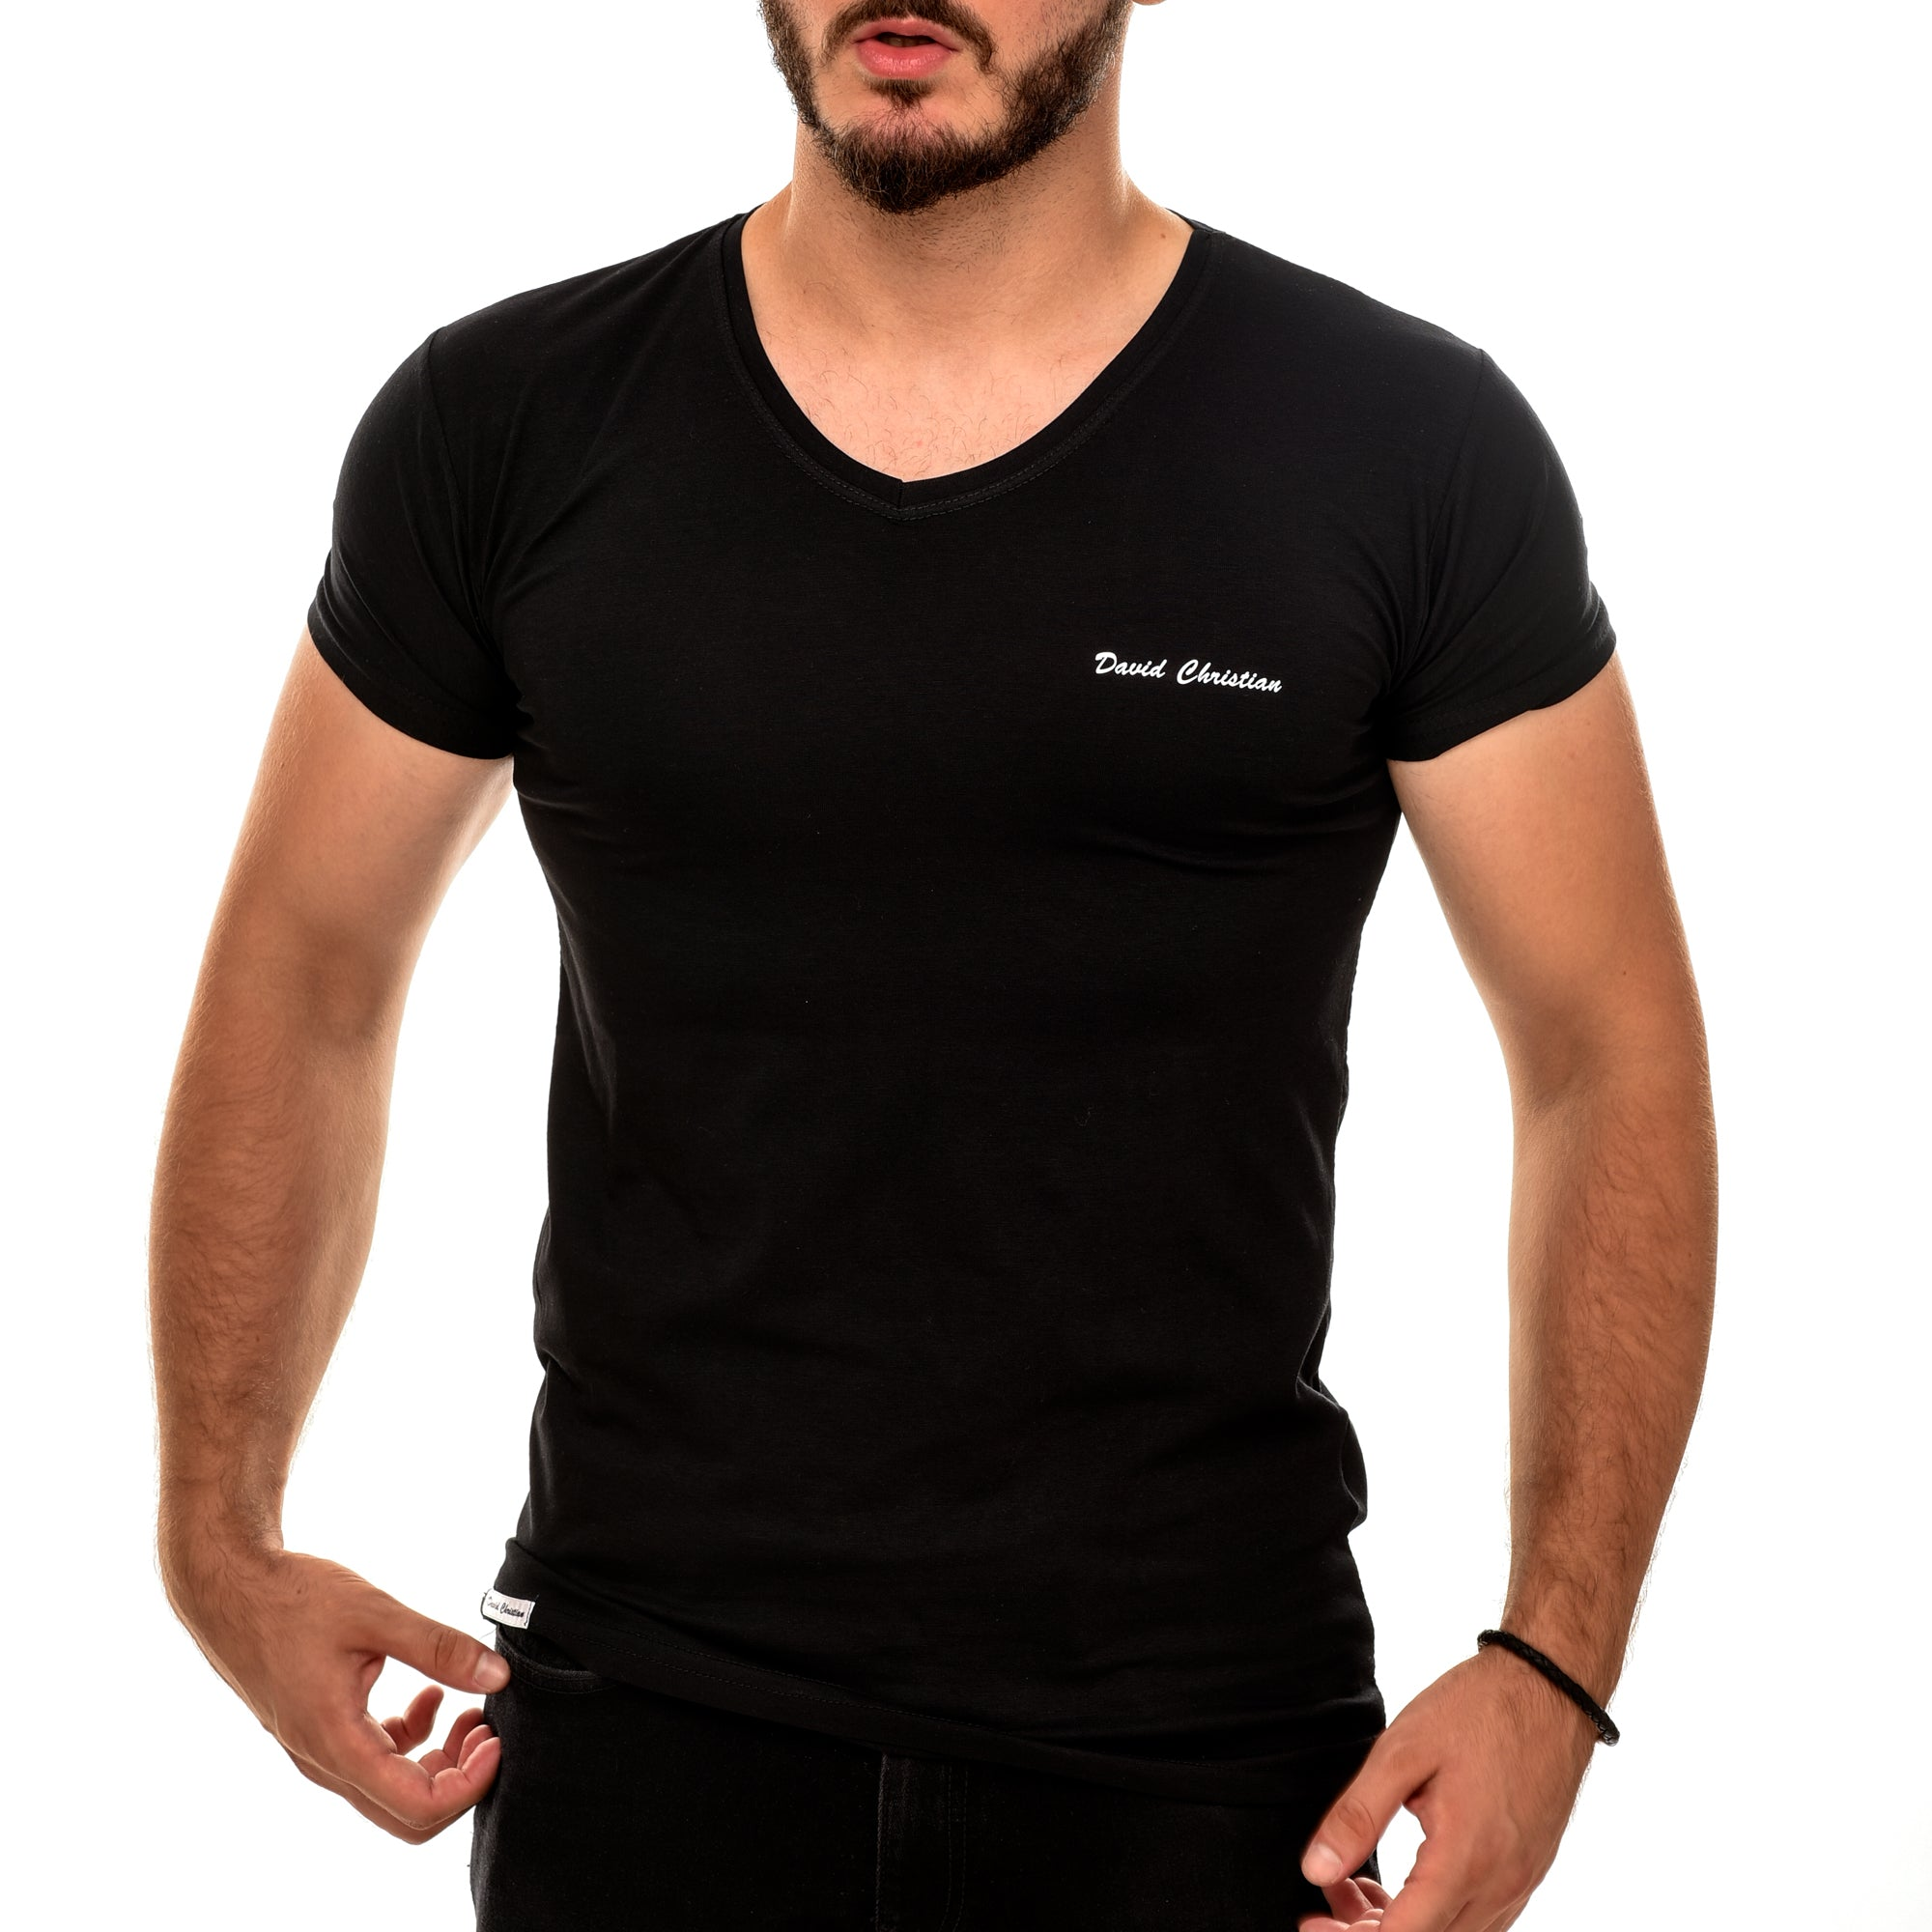 The Brand David Christian Sport T-Shirt